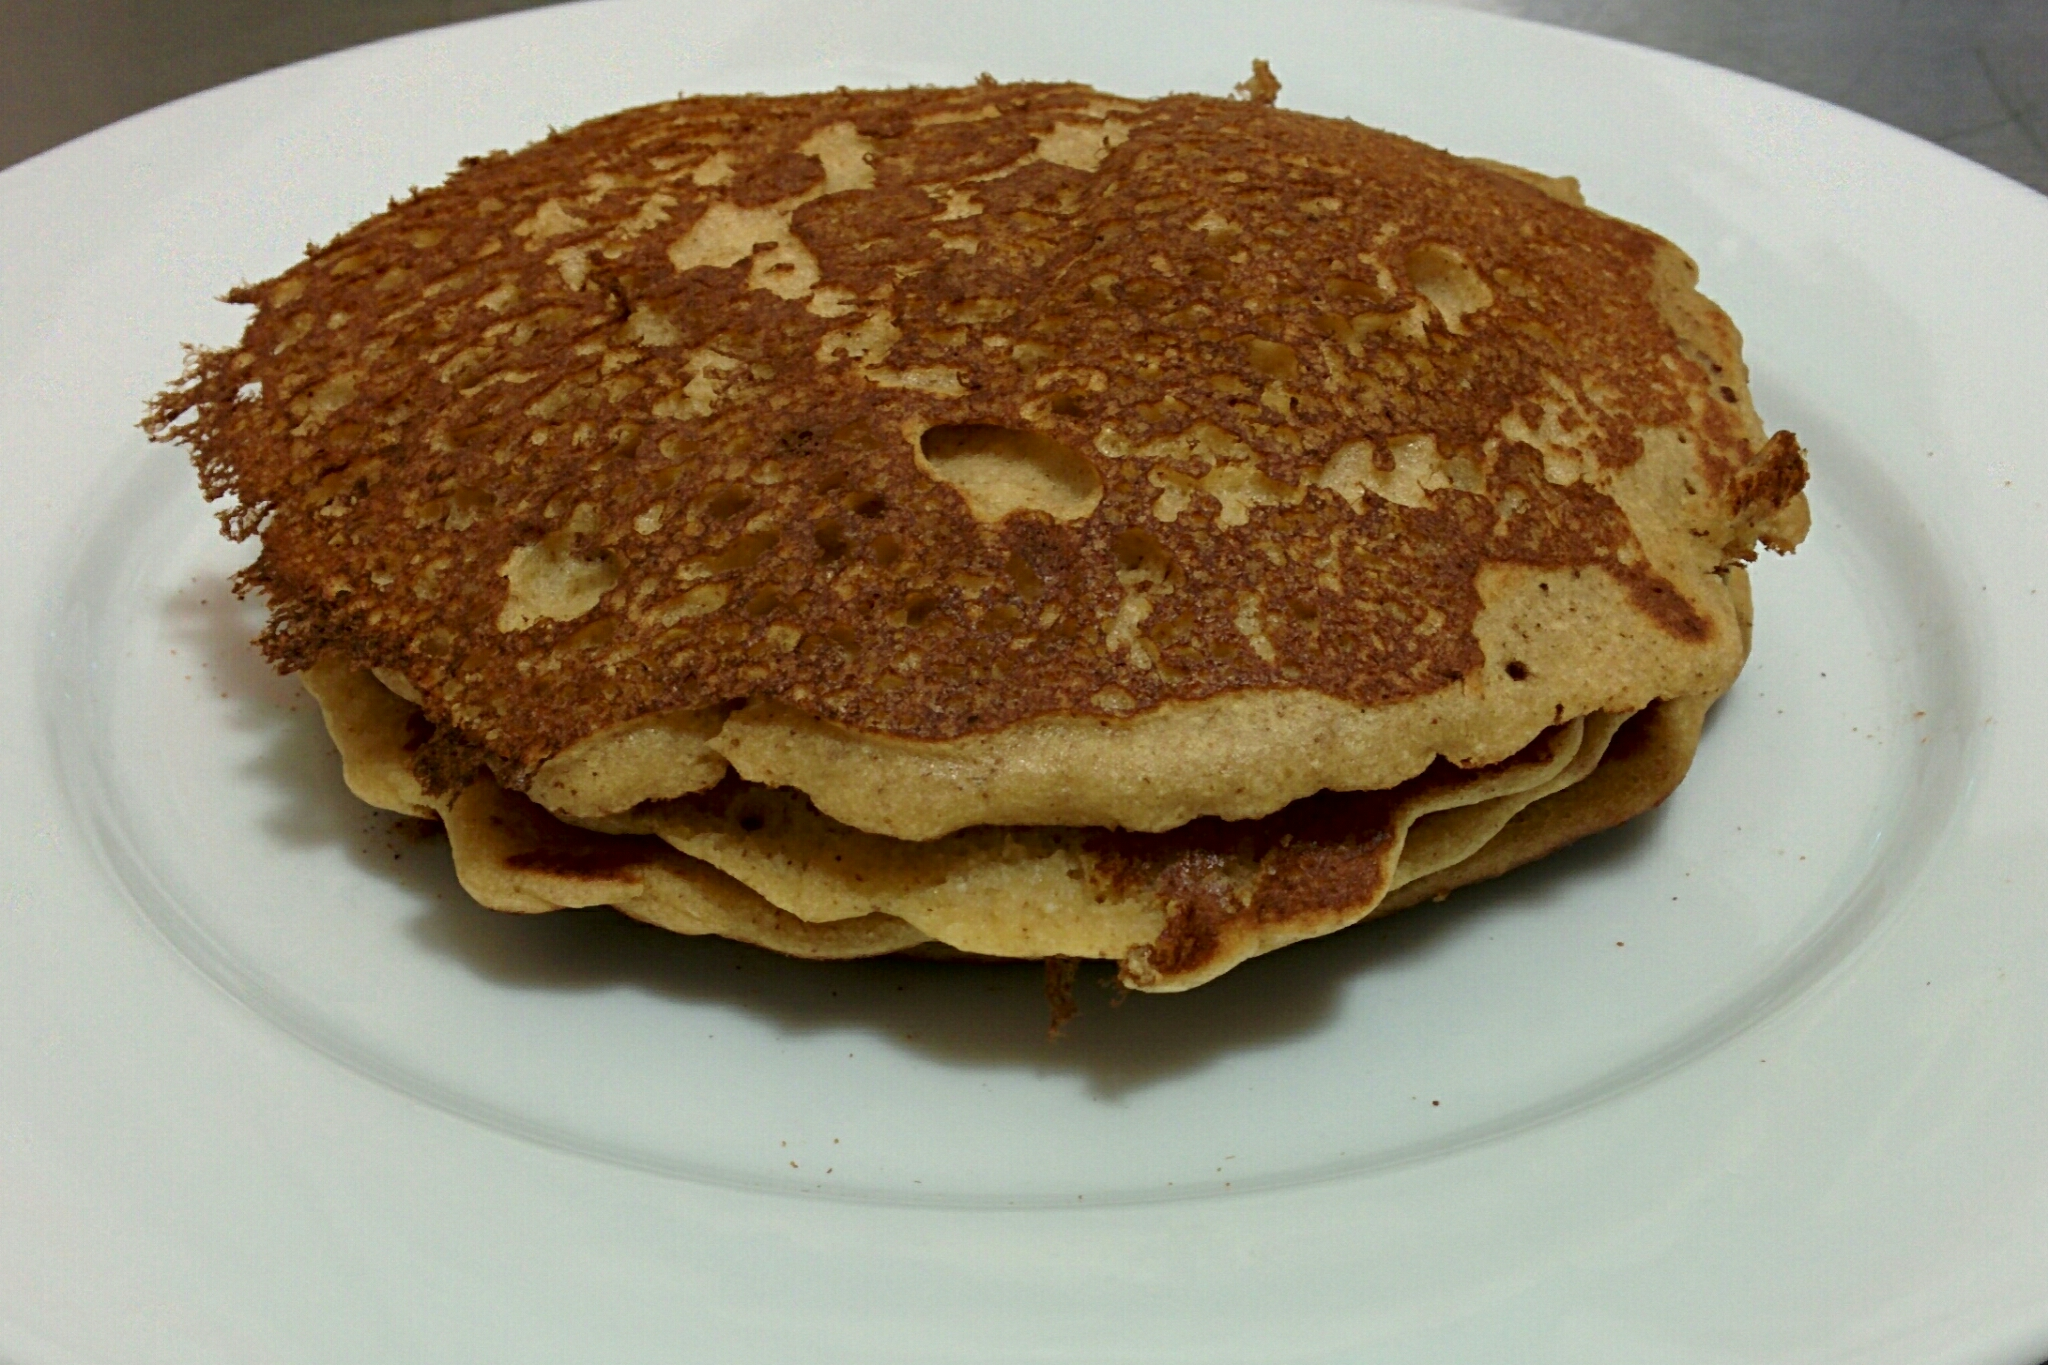 Plain coconut & buckwheat pancakes